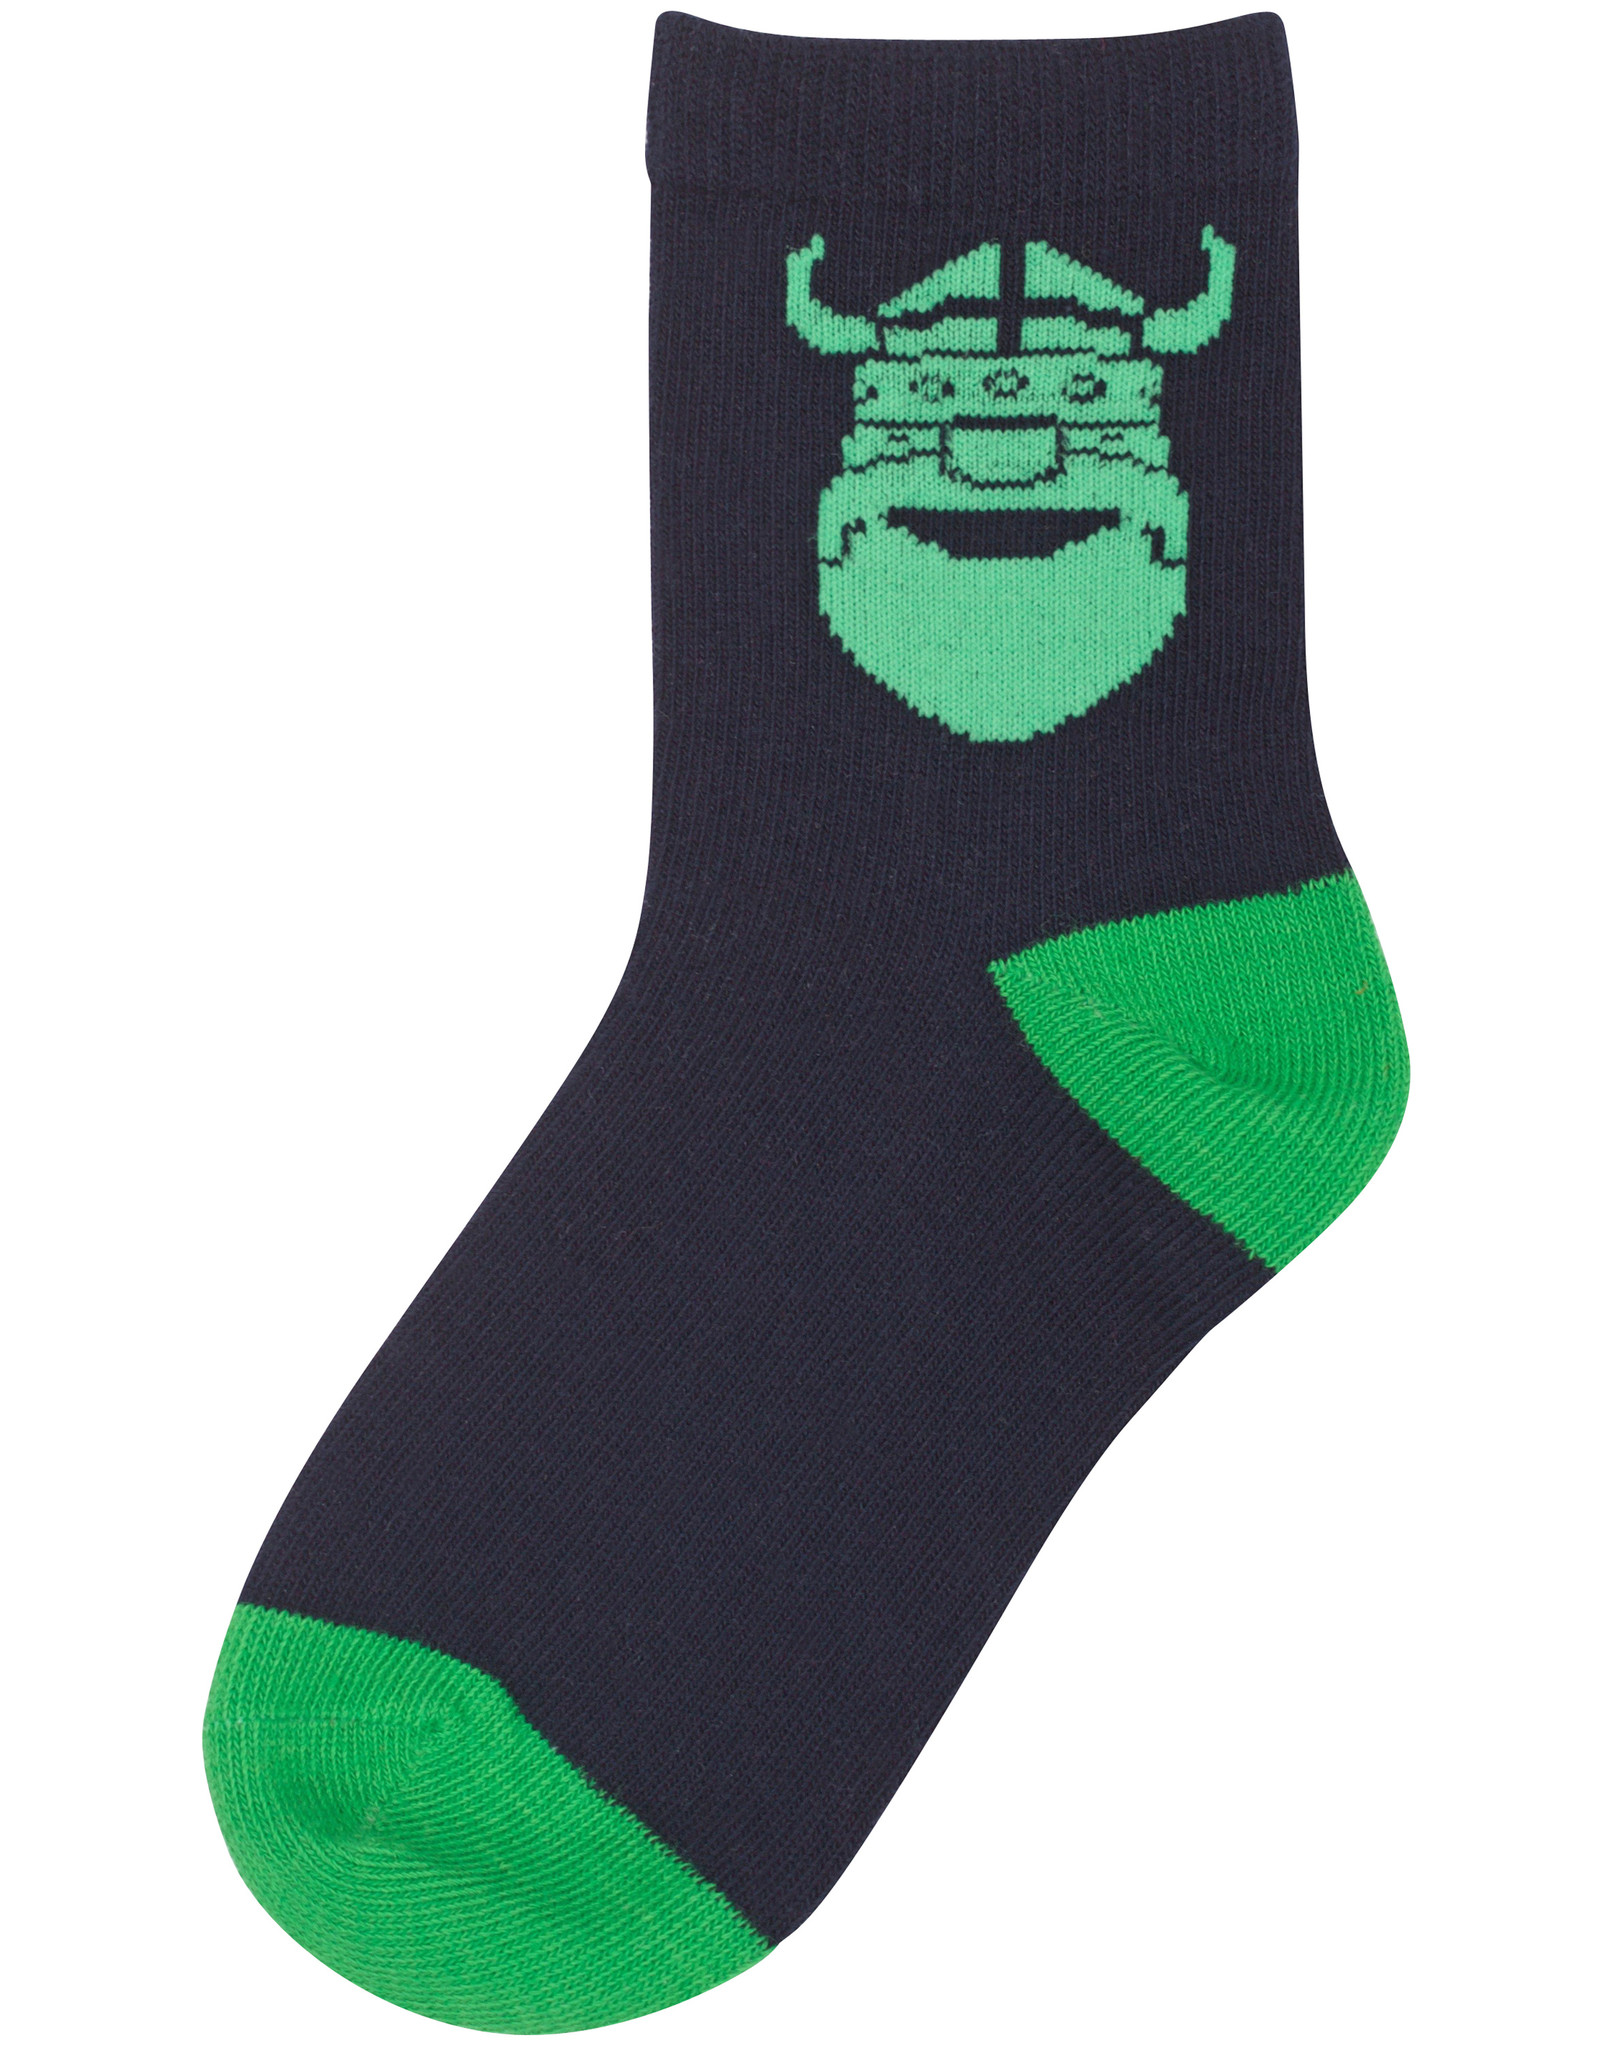 Danefae Children's socks - viking